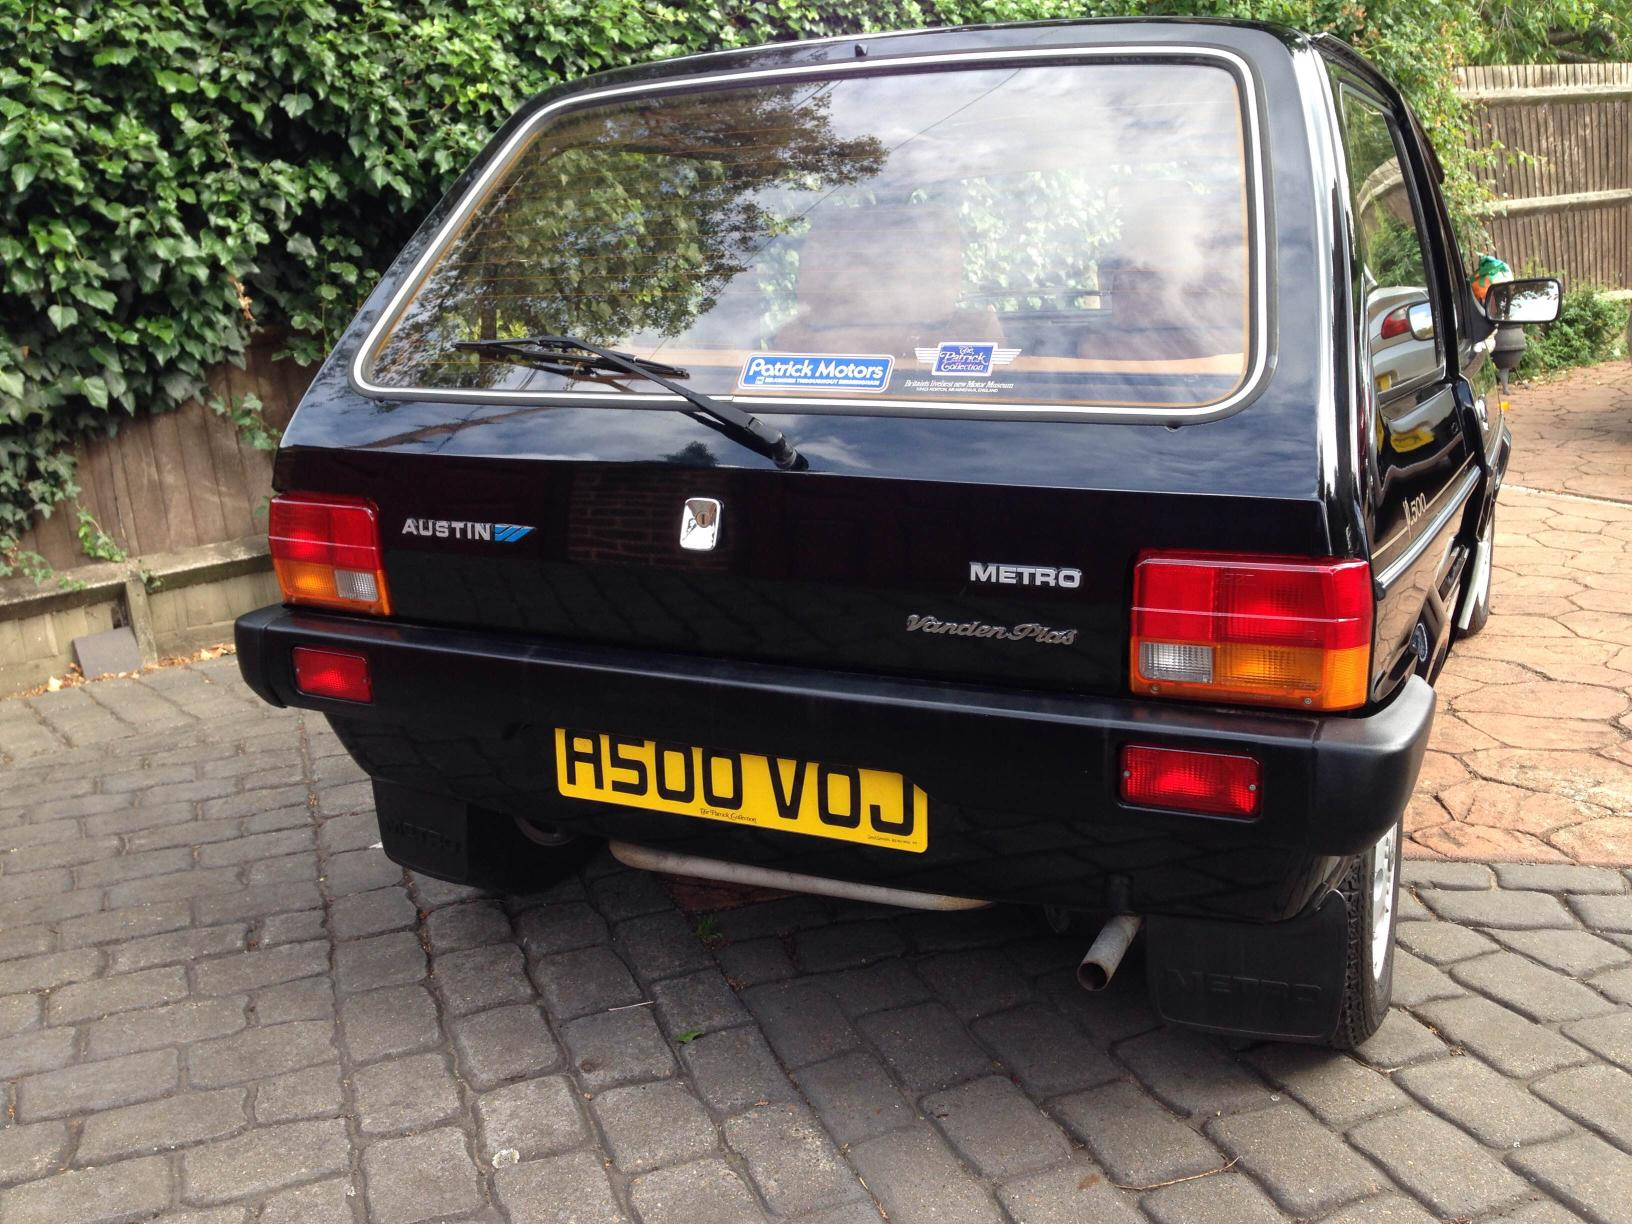 Brand New' Austin Metro For Sale - Just British